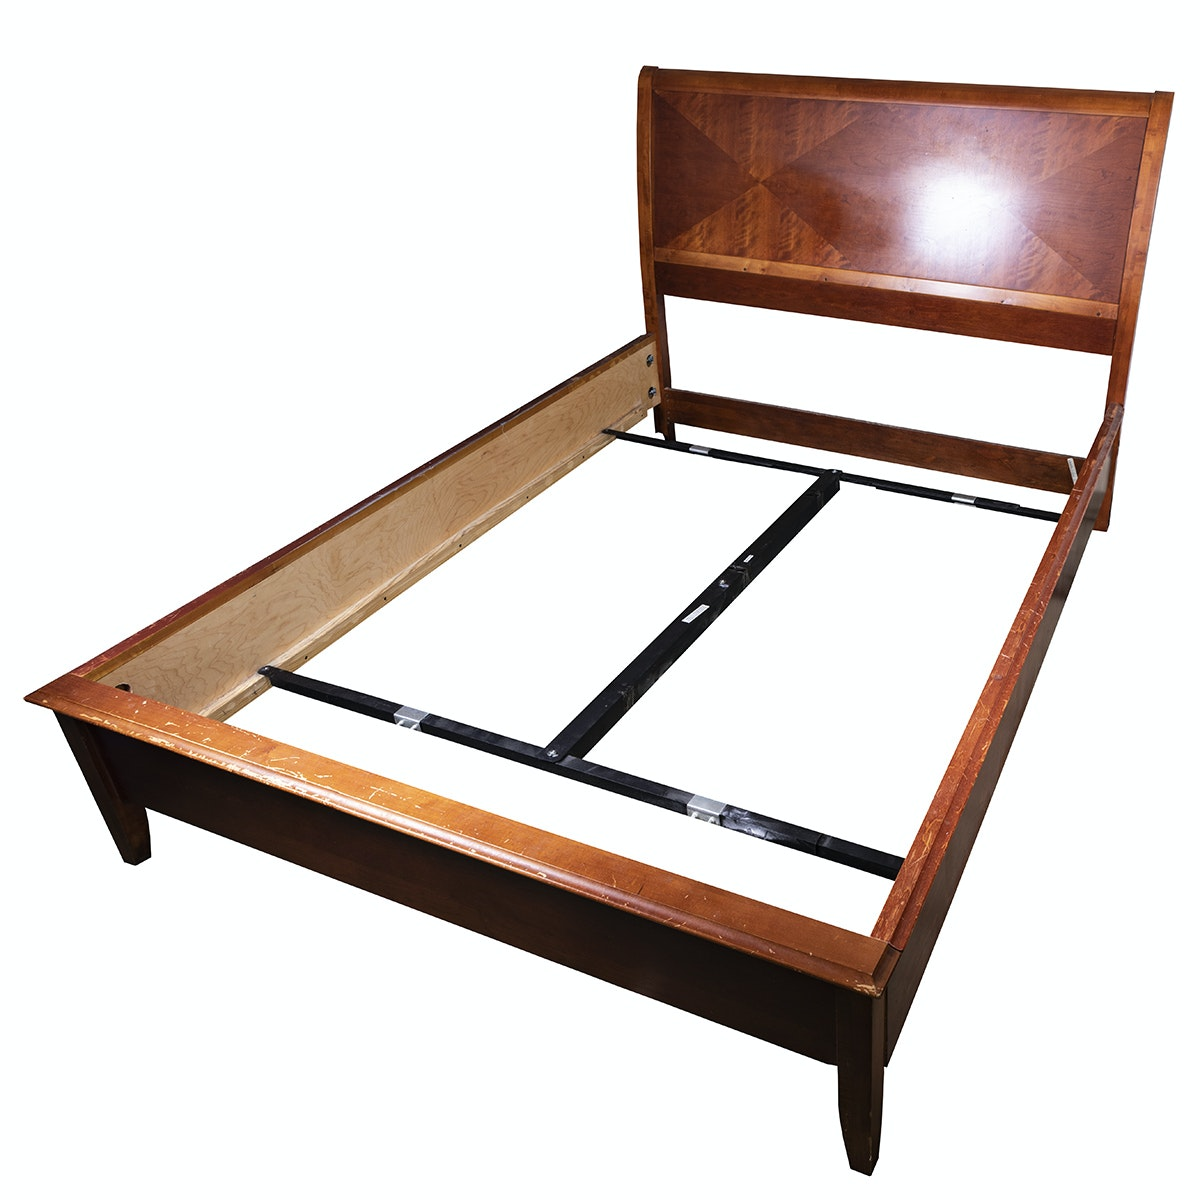 Contemporary Wood Queen Size Bed Frame by Bassett